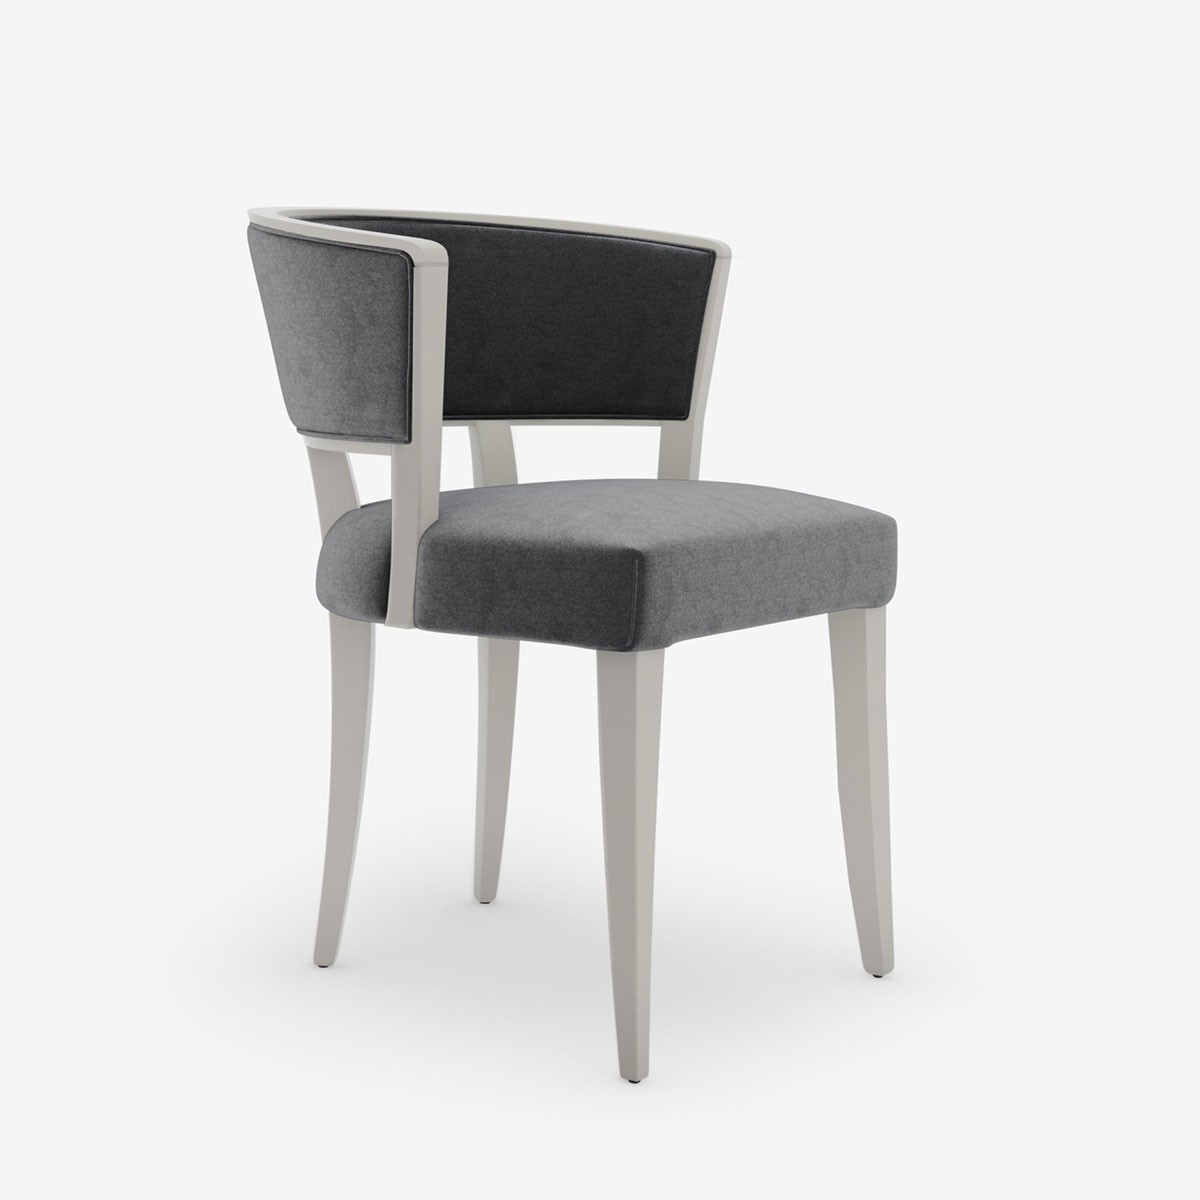 Statement Chair in Style Velvet Slate Grey